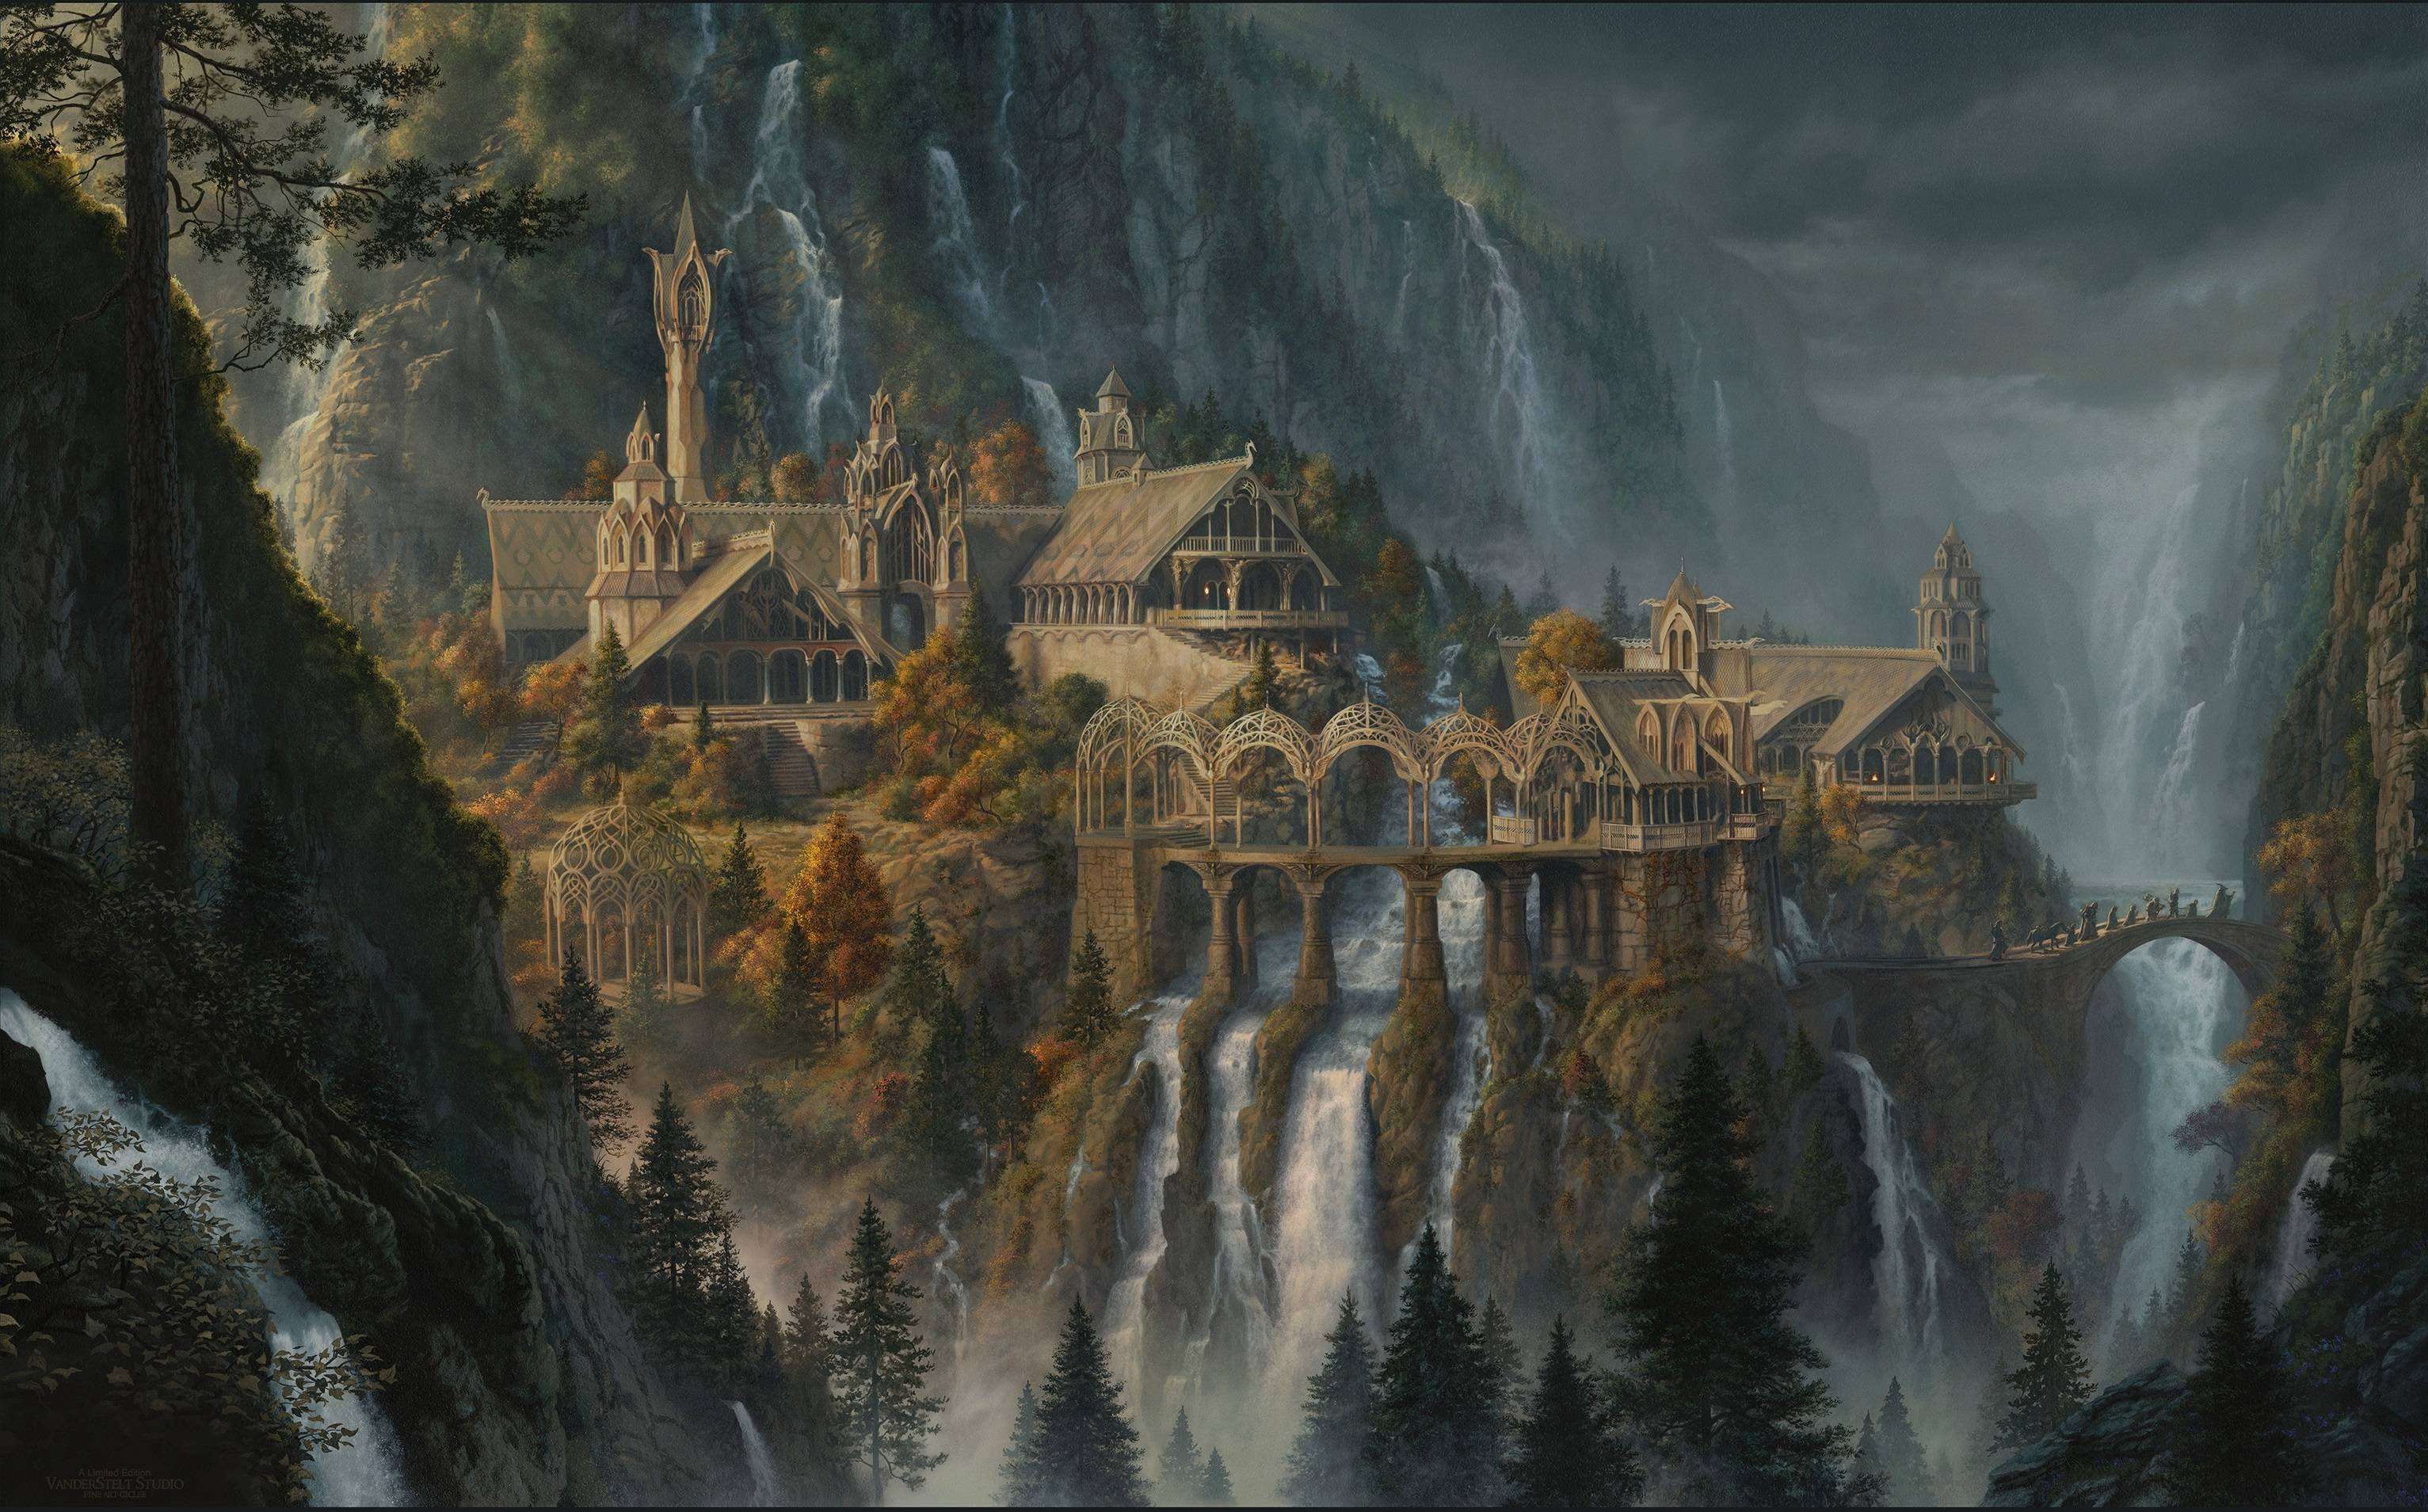 Lord of the Rings Rivendell Zoom Background